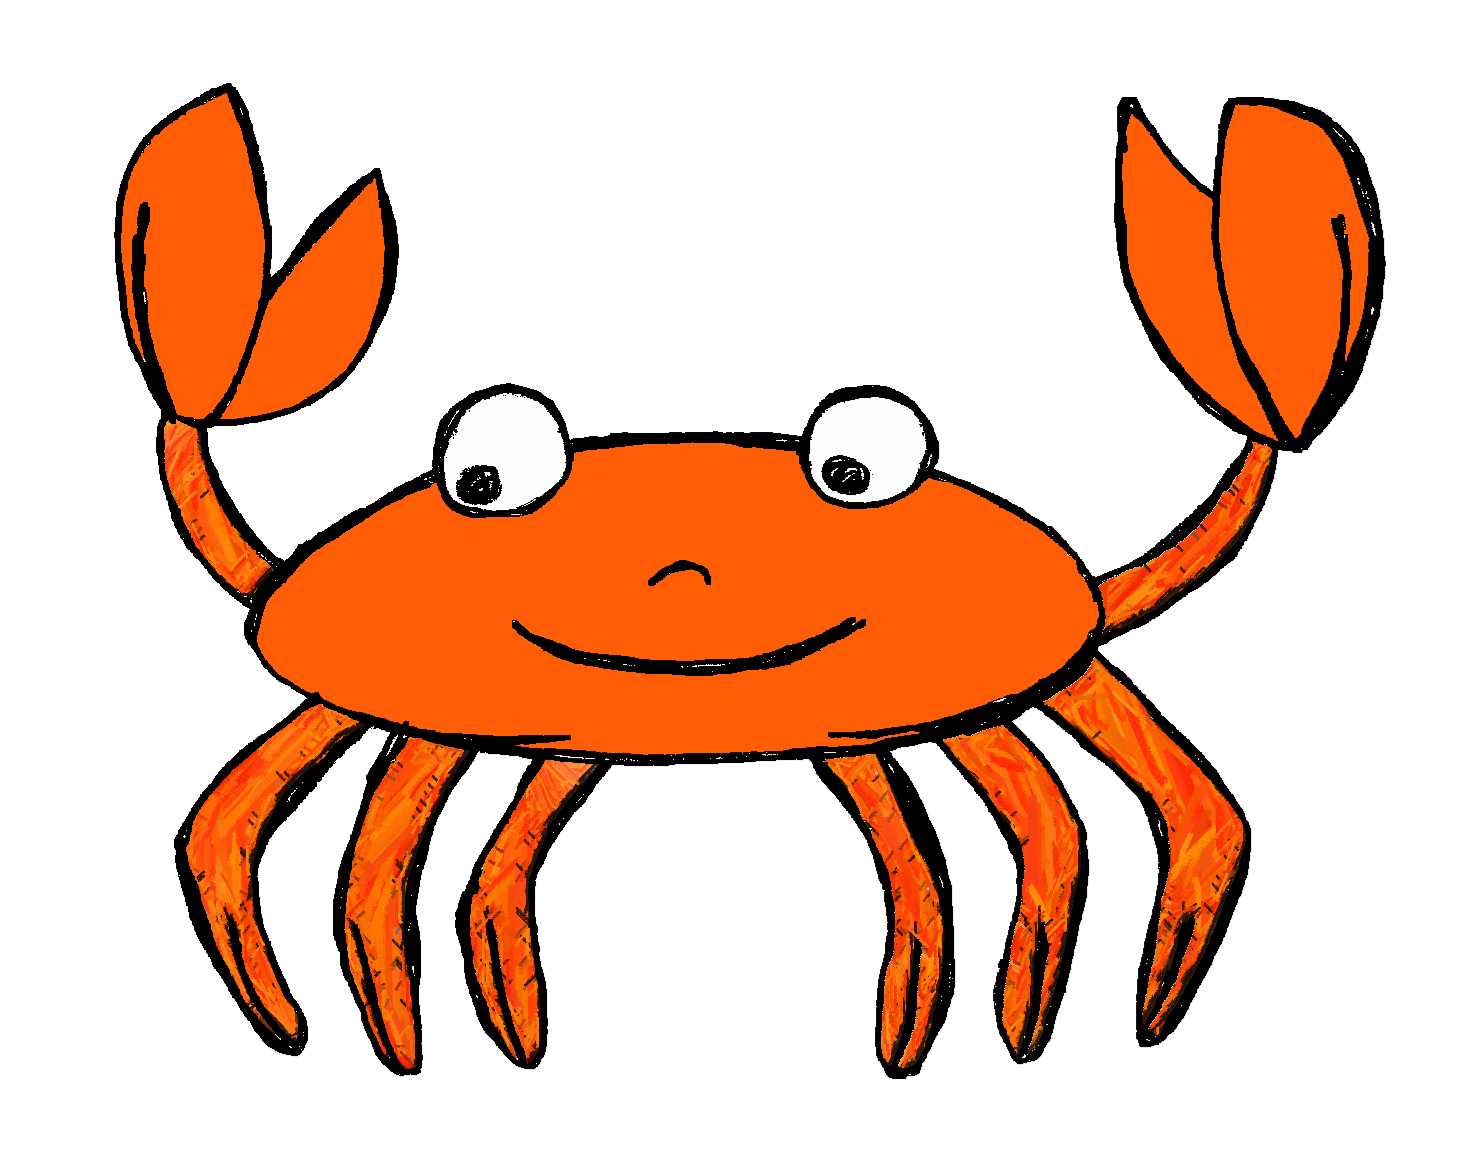 Transparent crab aquatic animal. Clip art by carrie